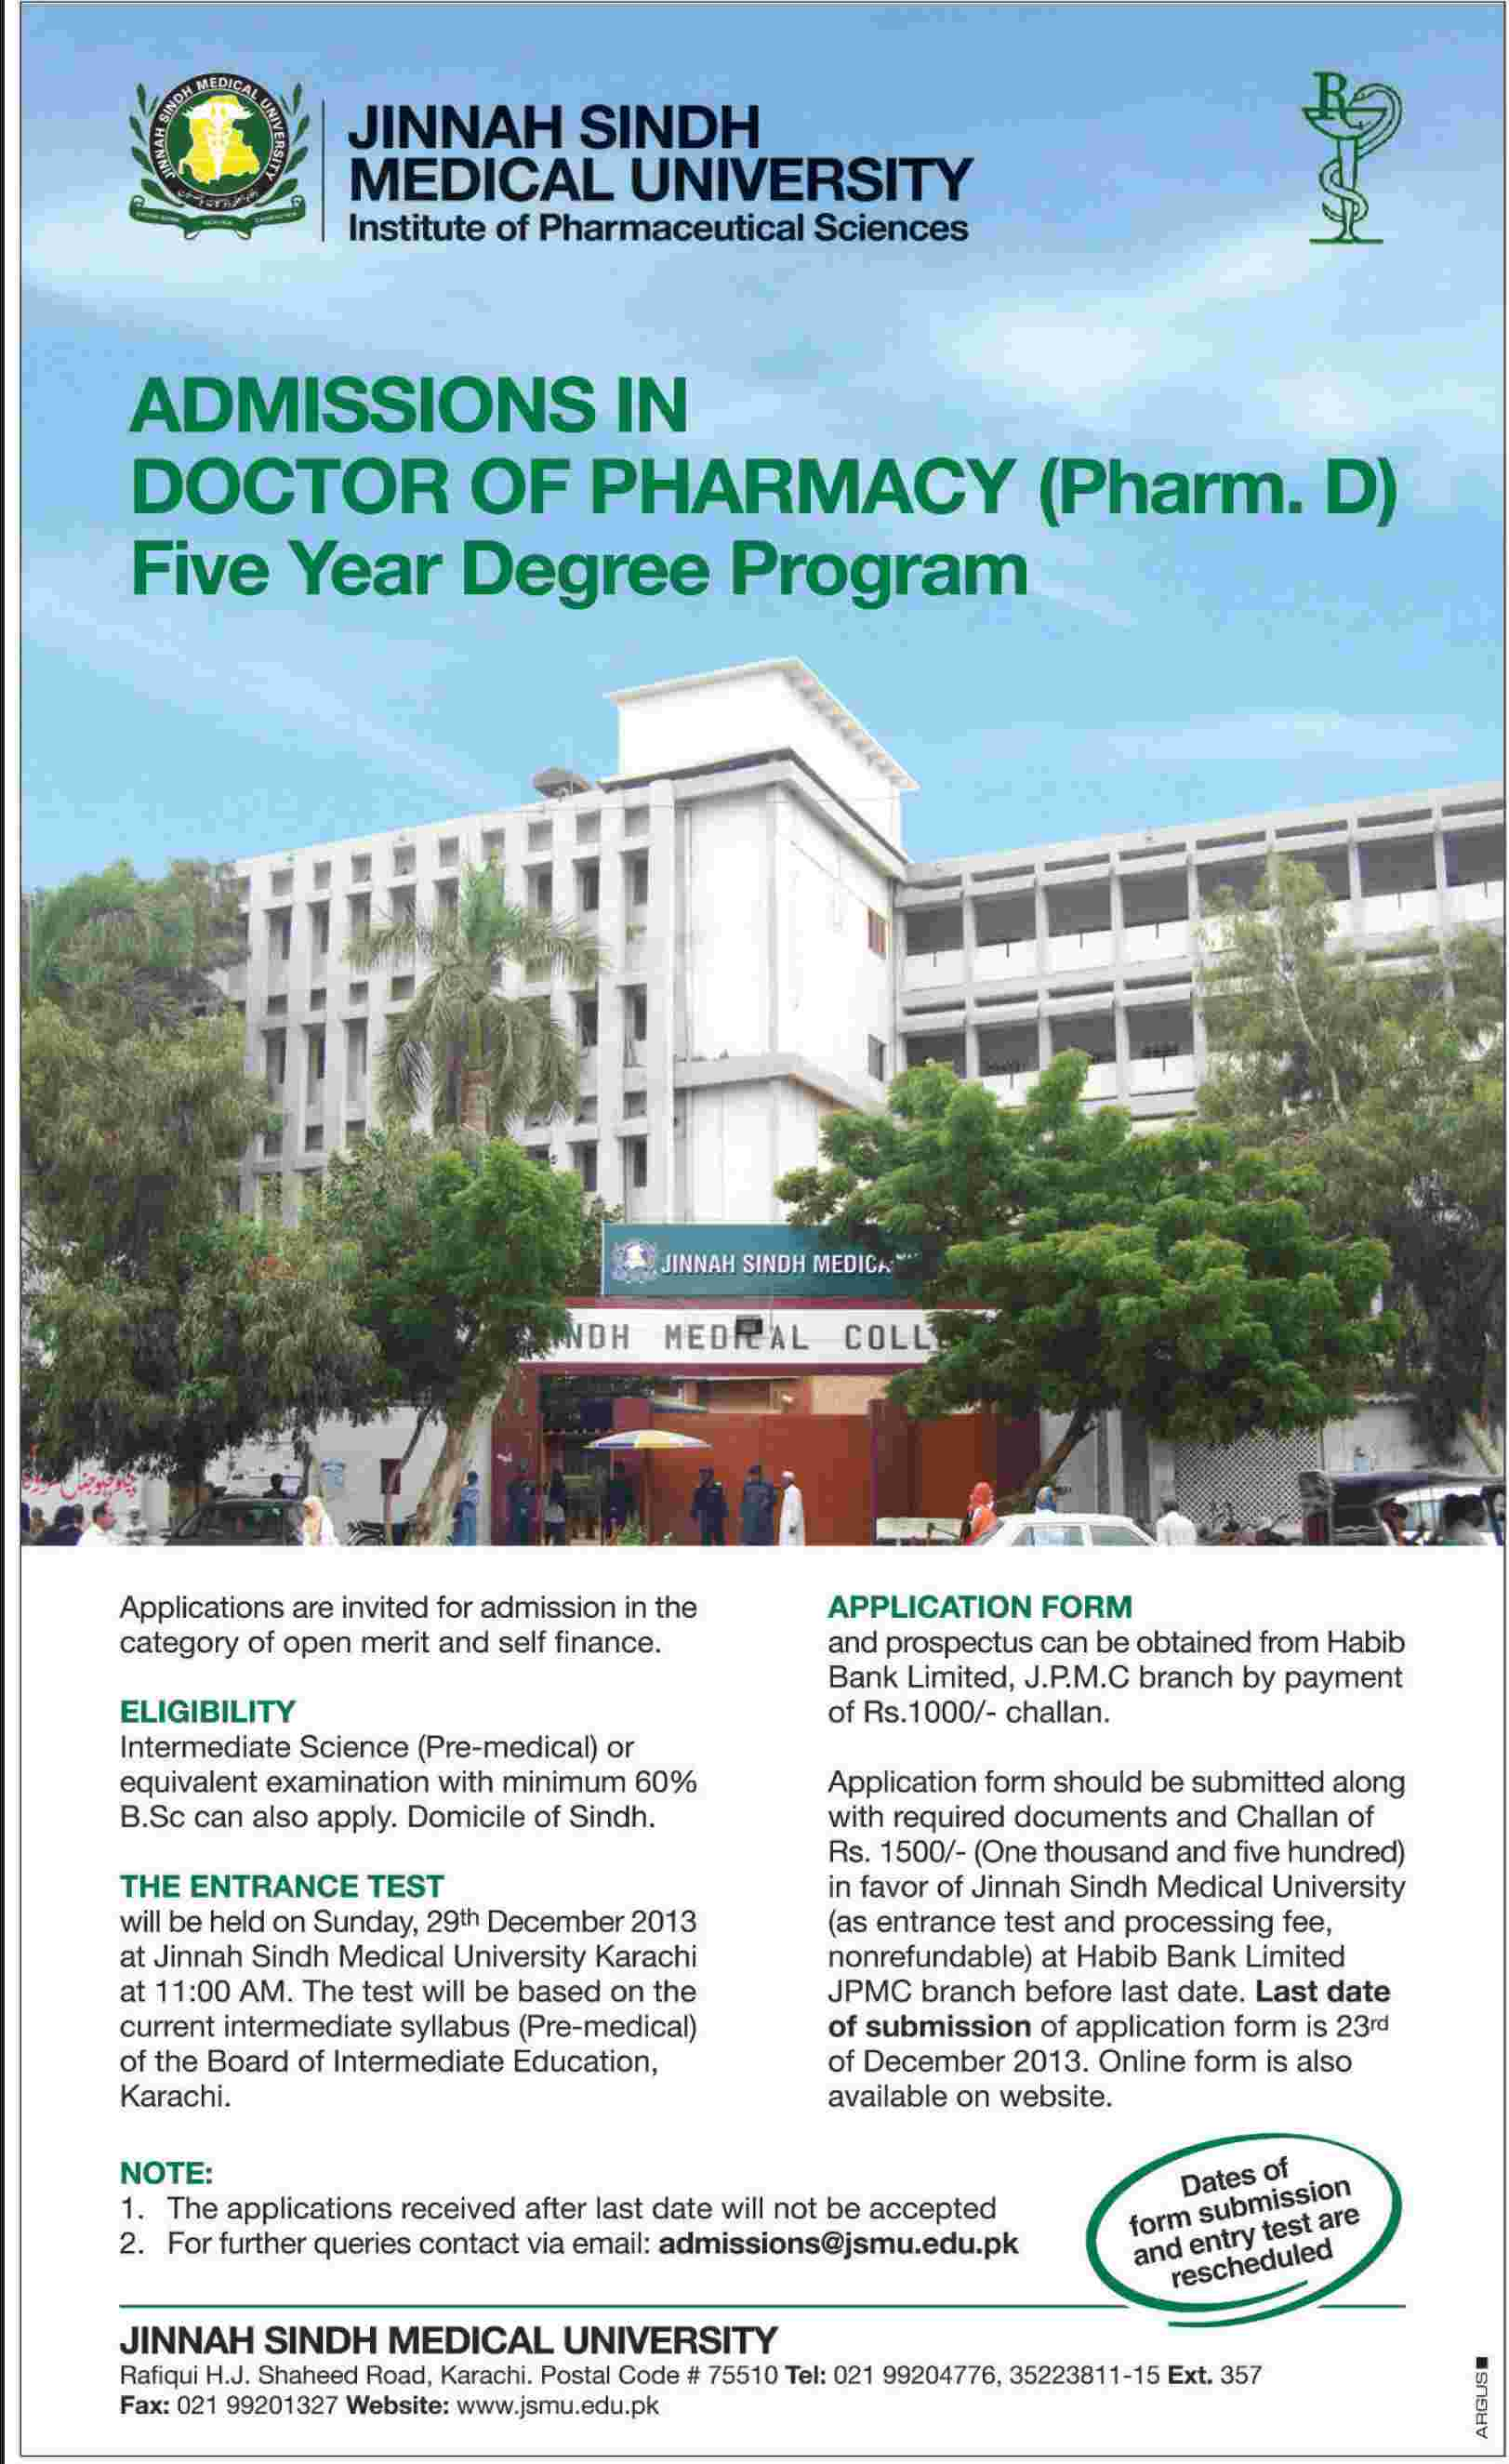 Karachi: Jinnah Sindh Medical University (JSMU) Admission Notice 2013 for Doctor of Pharmacy (Pharm-D)